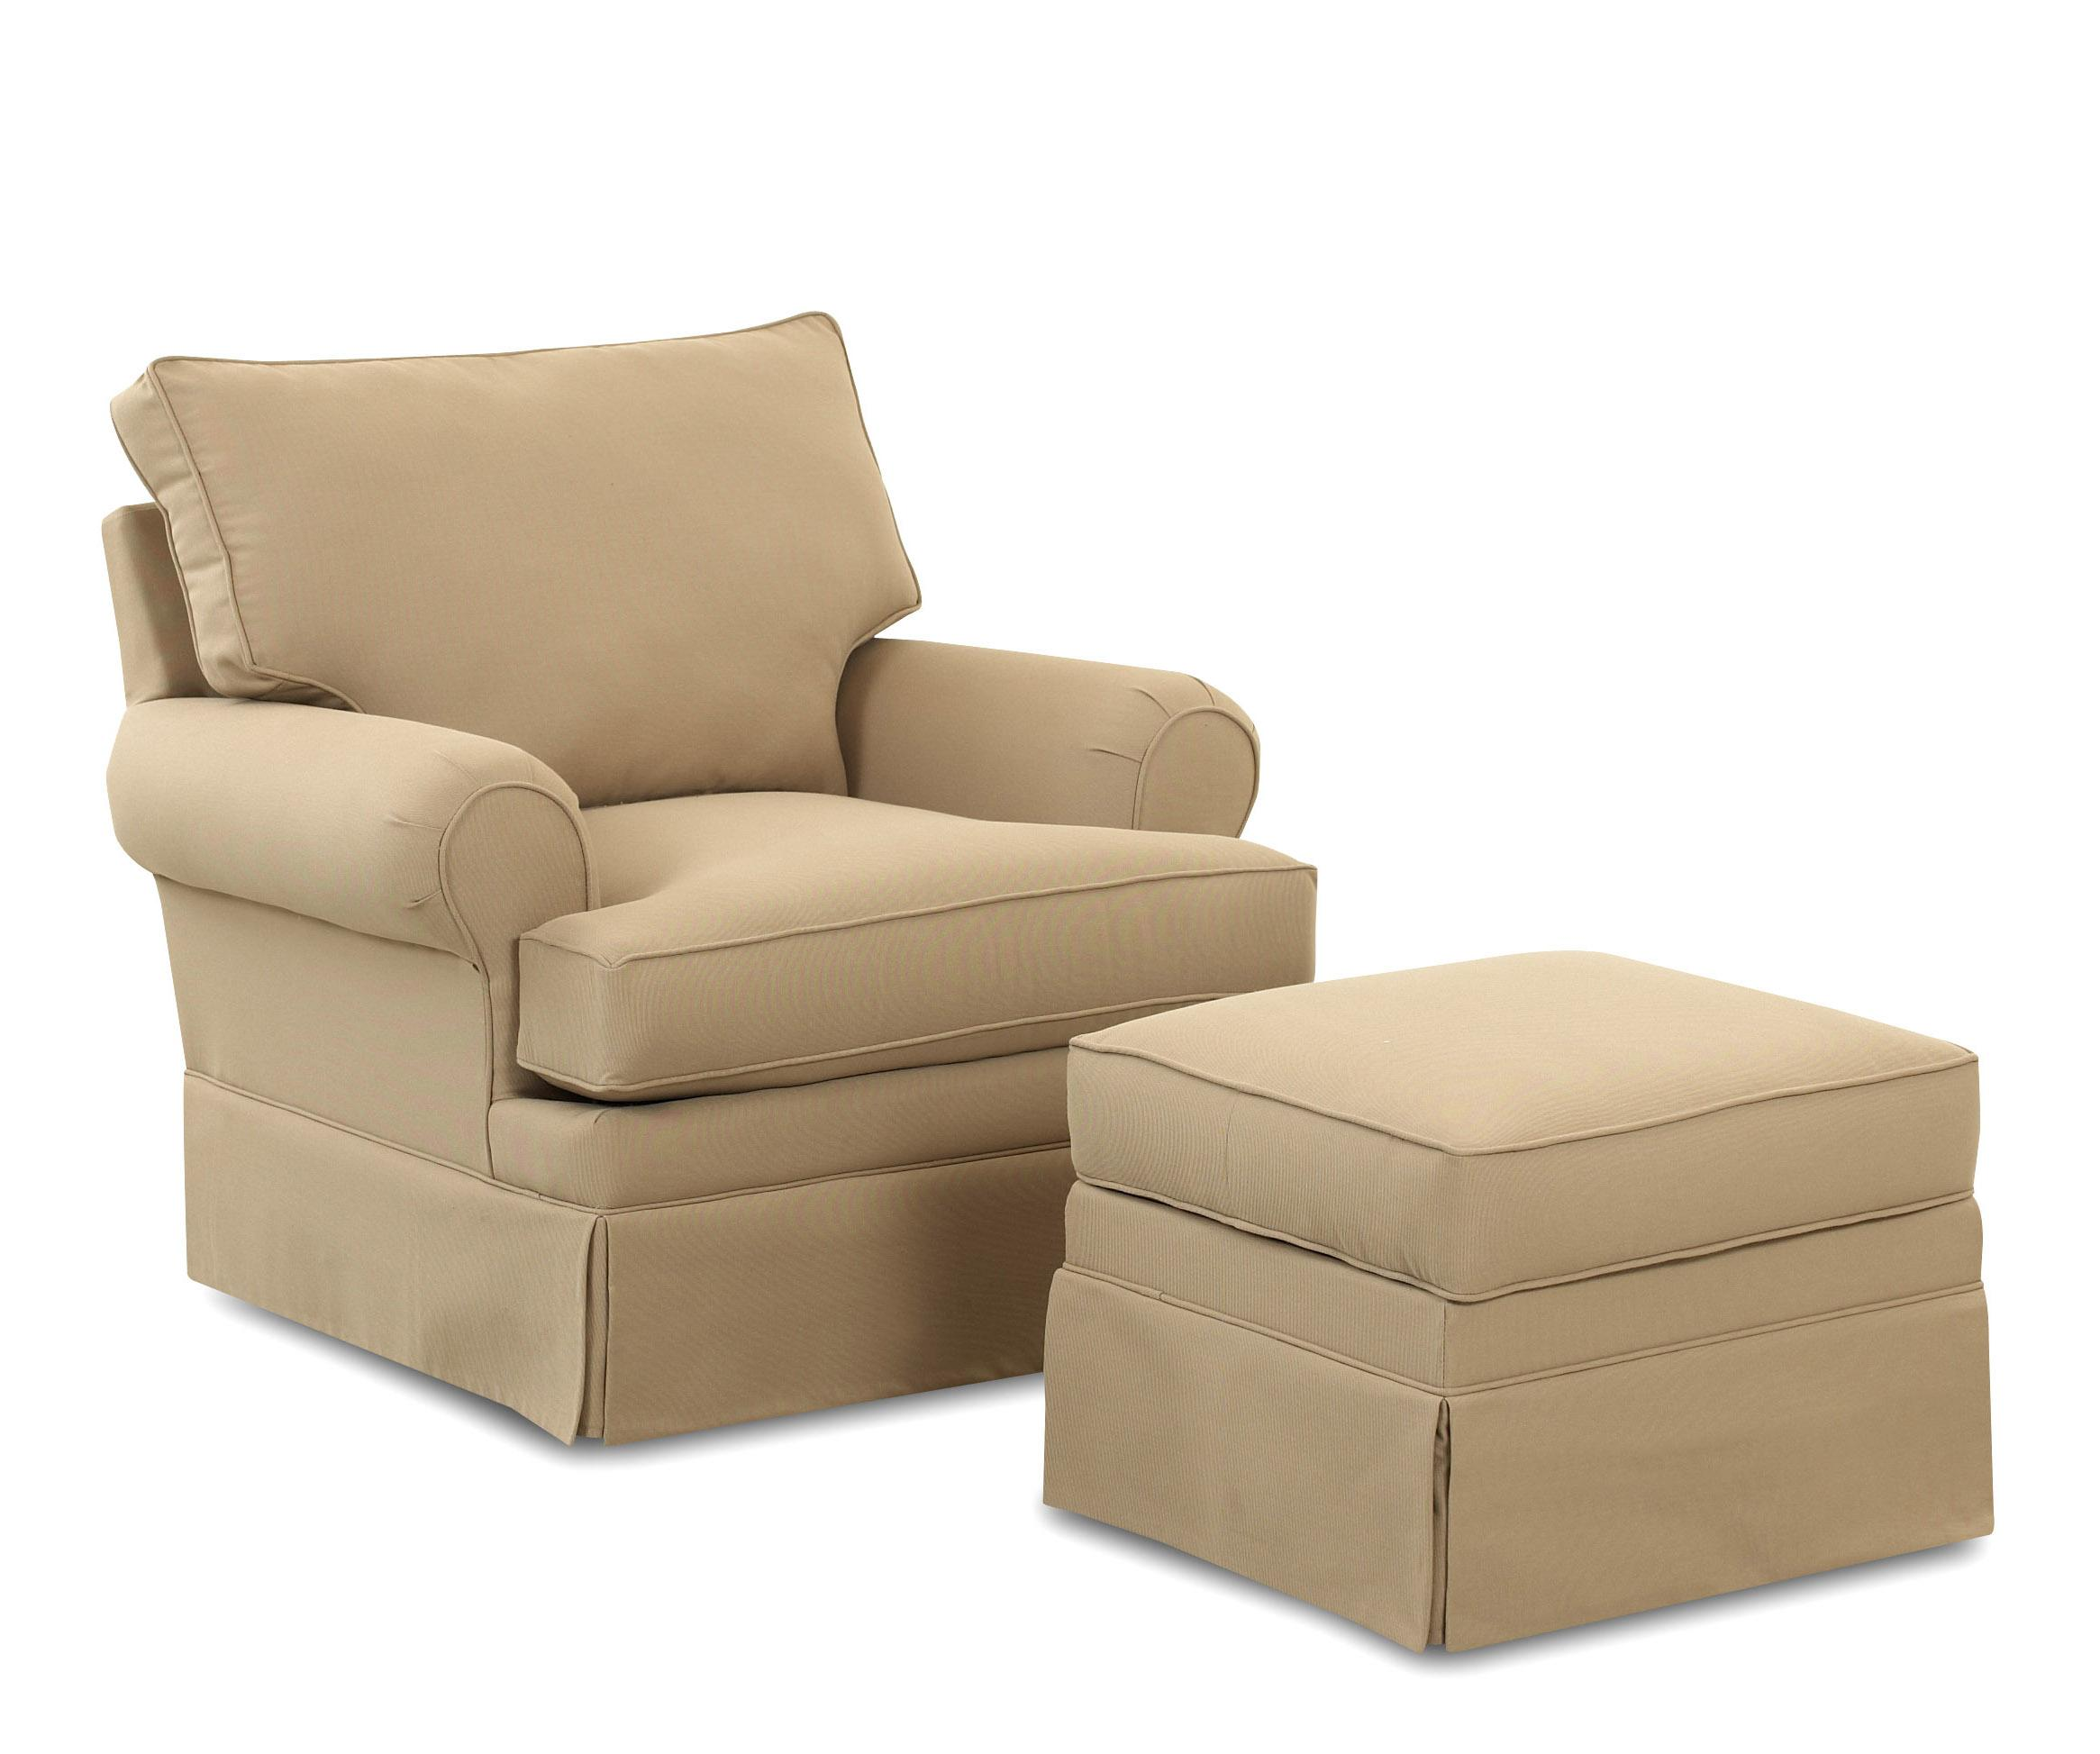 Klaussner Chairs and Accents Carolina Glider Chair and Ottoman - Item Number: 750-GC+750-GLDOT